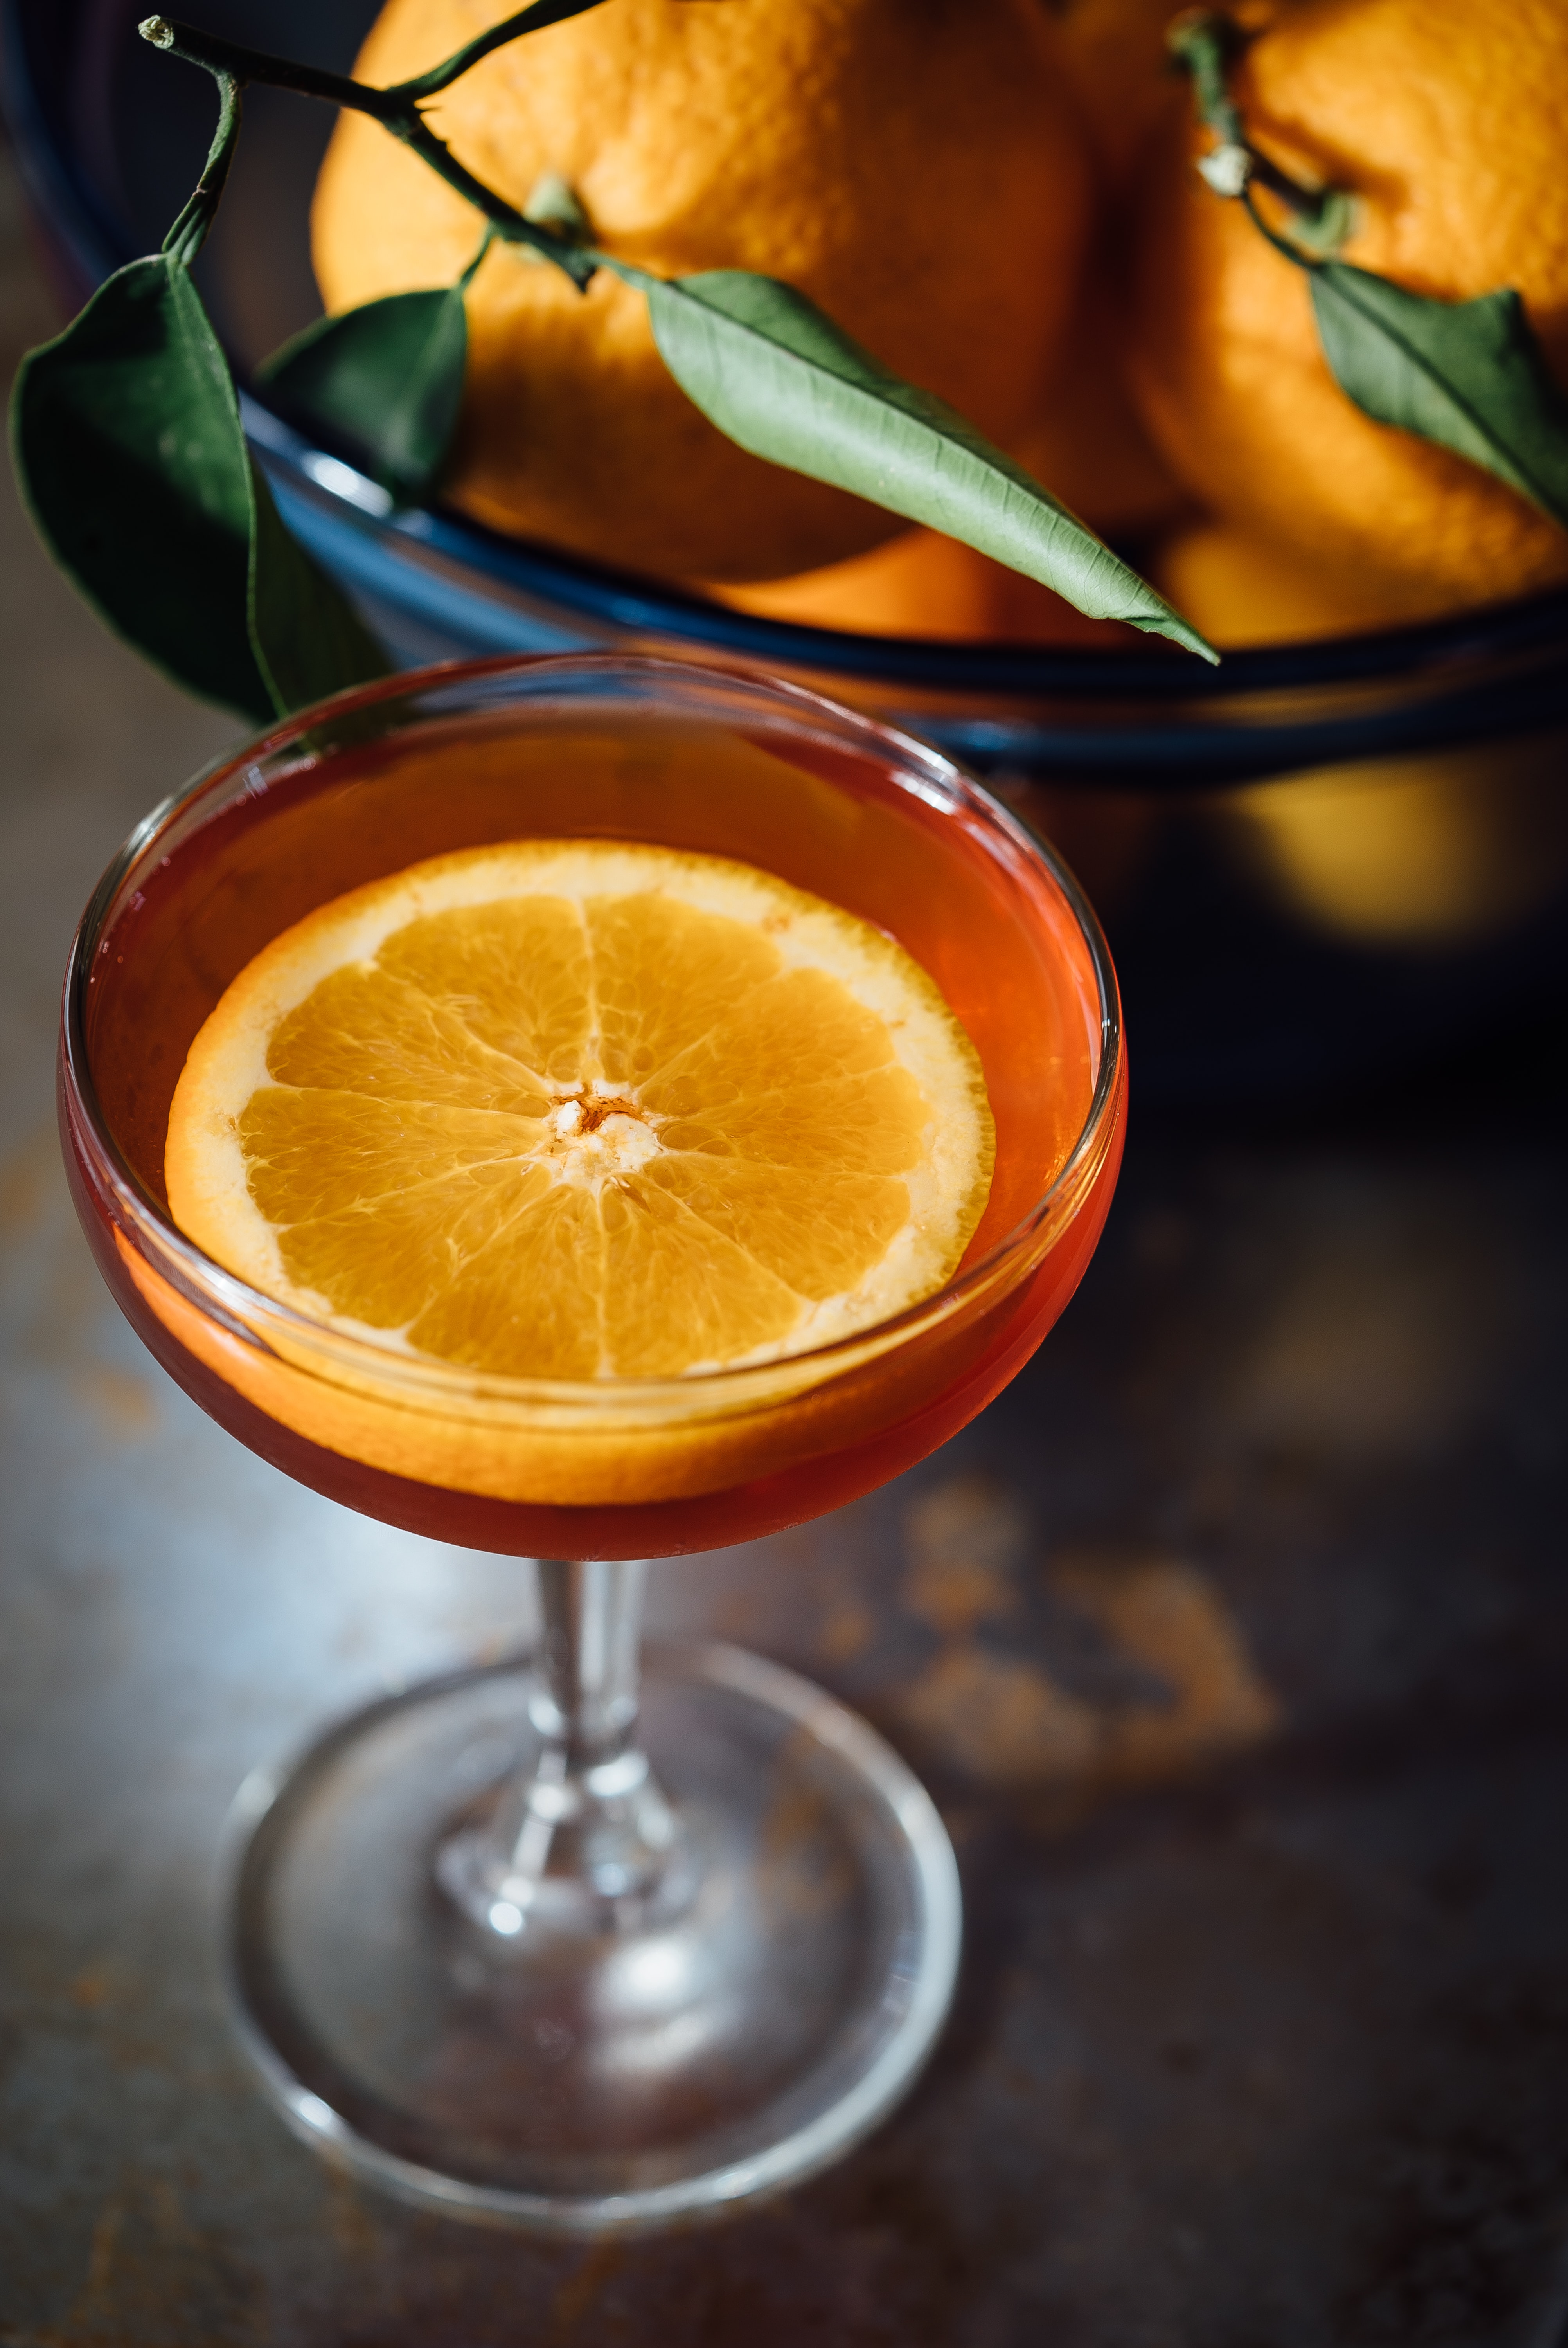 Macro view of a cocktail orange drink with a bowl of oranges with leaves by its side